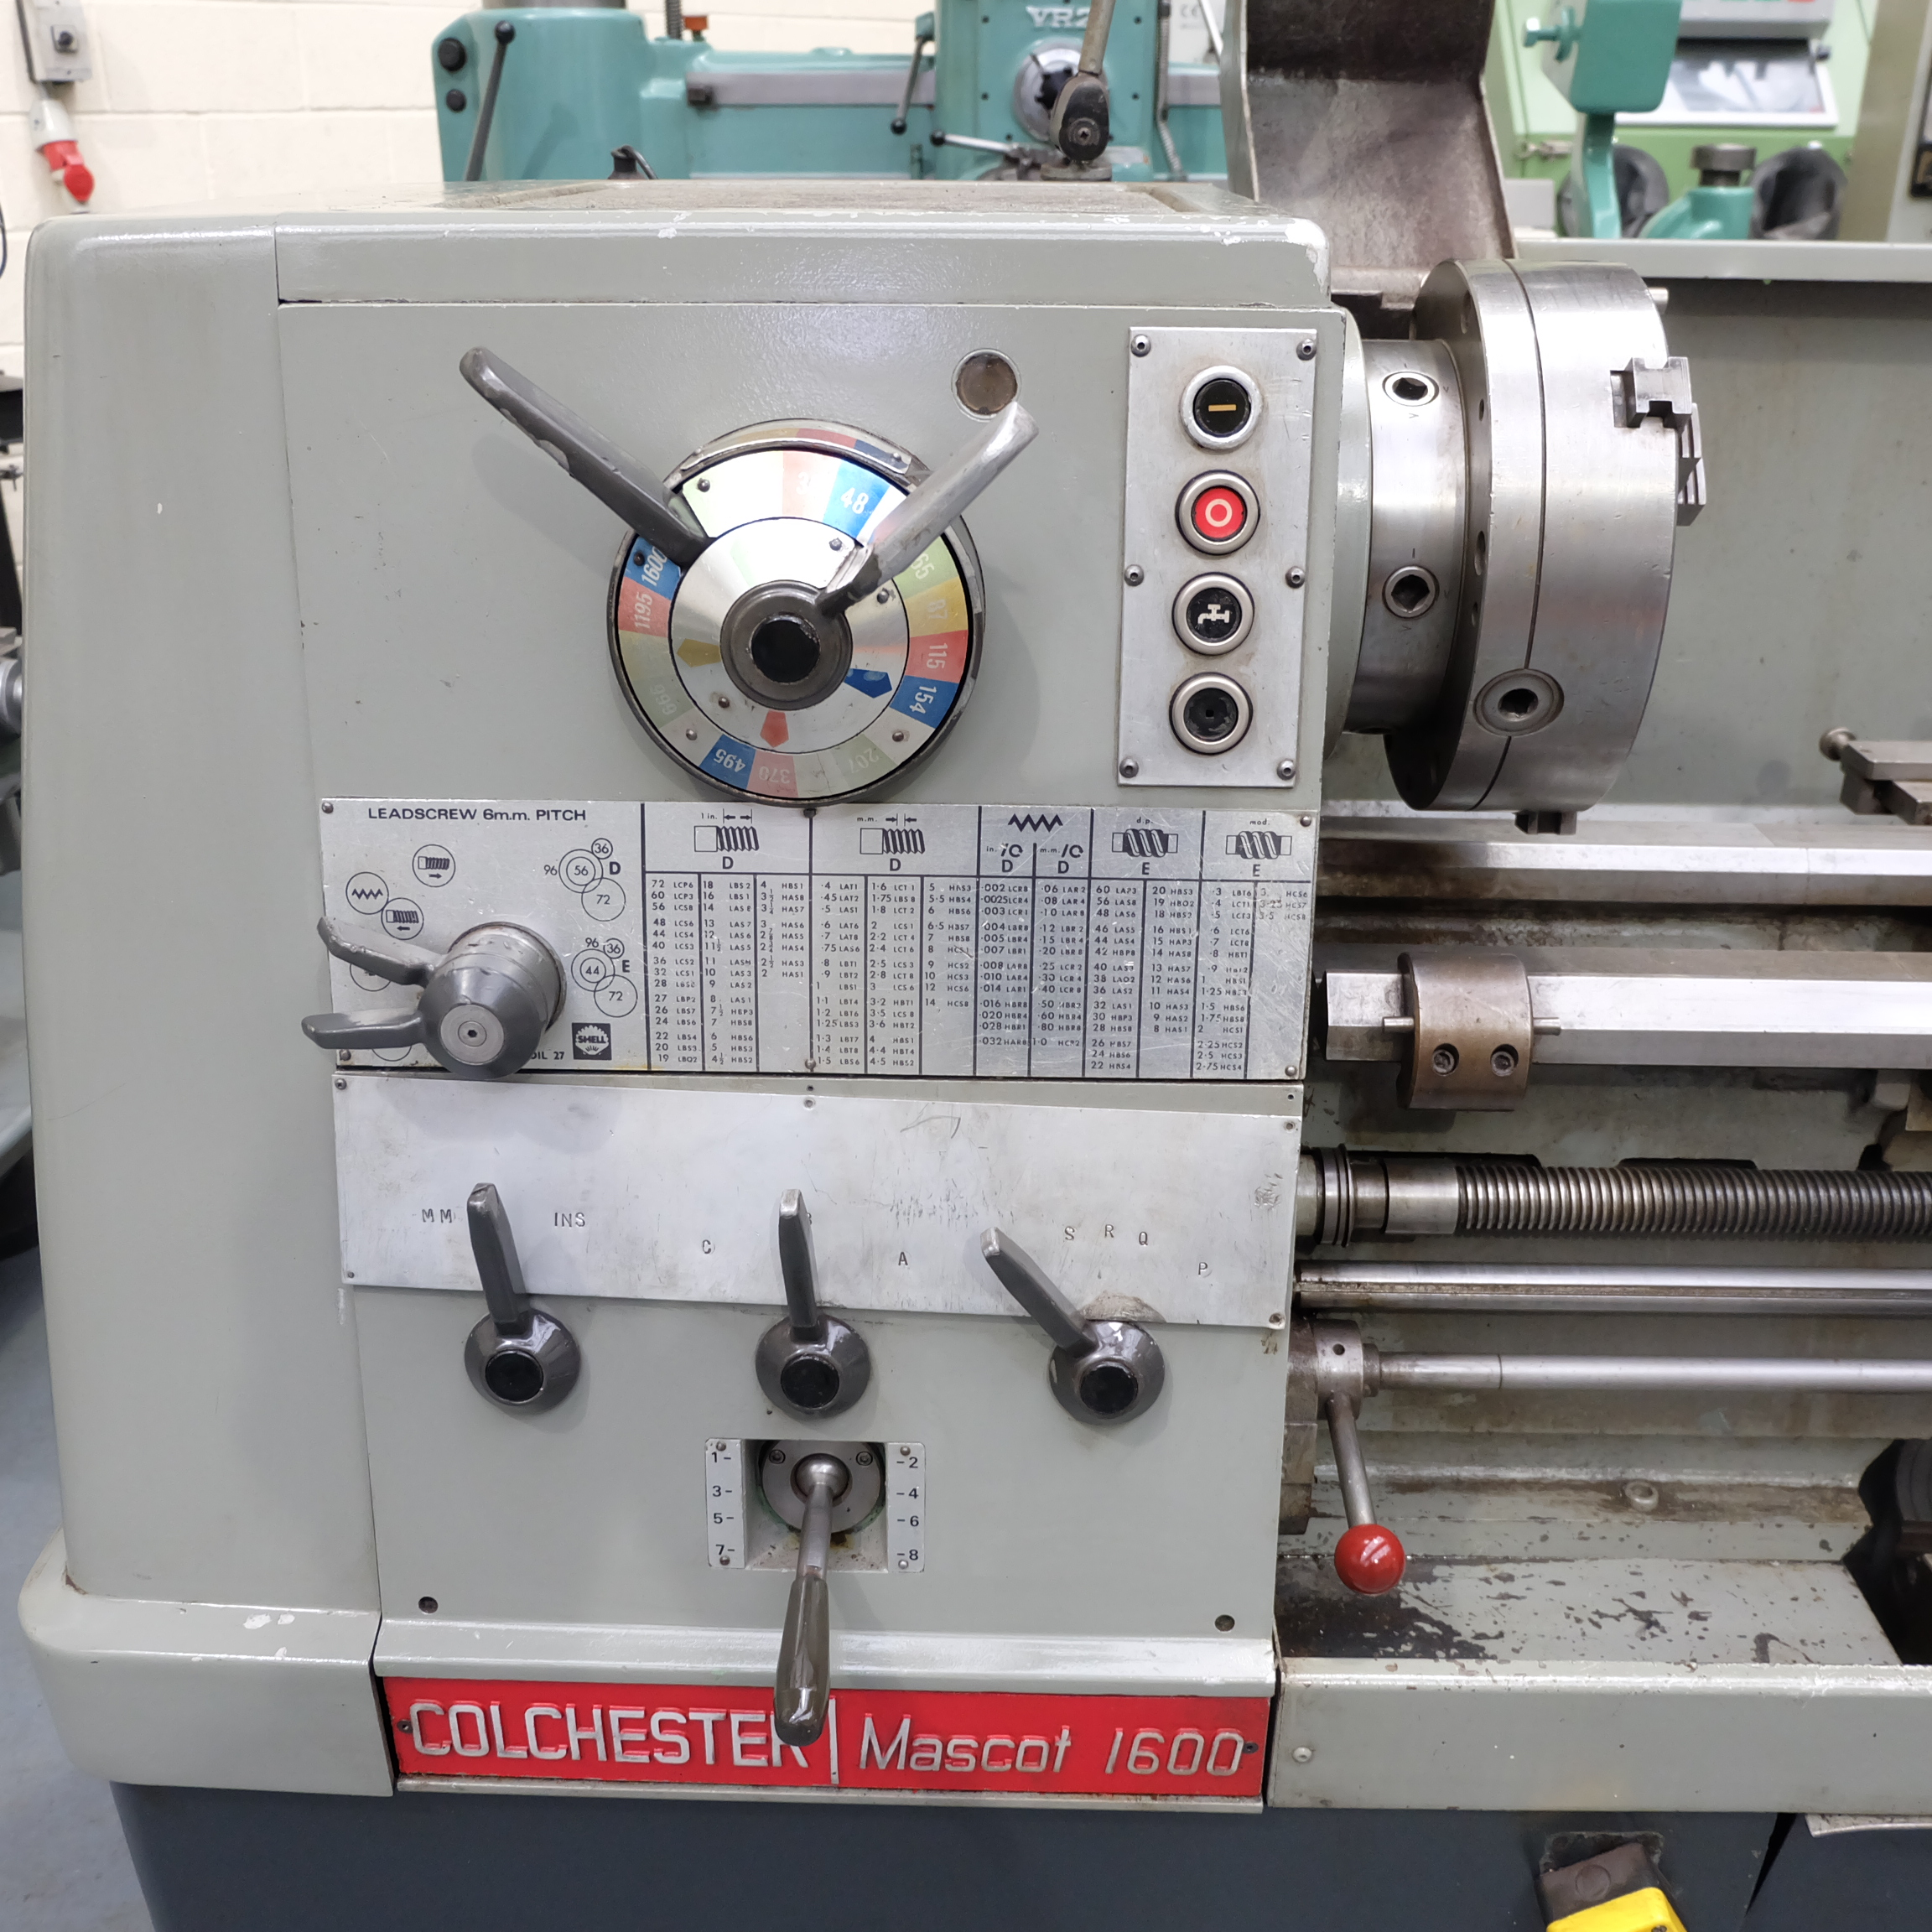 Colchester Mascot 1600 Gap Bed Centre Lathe. - Image 3 of 10